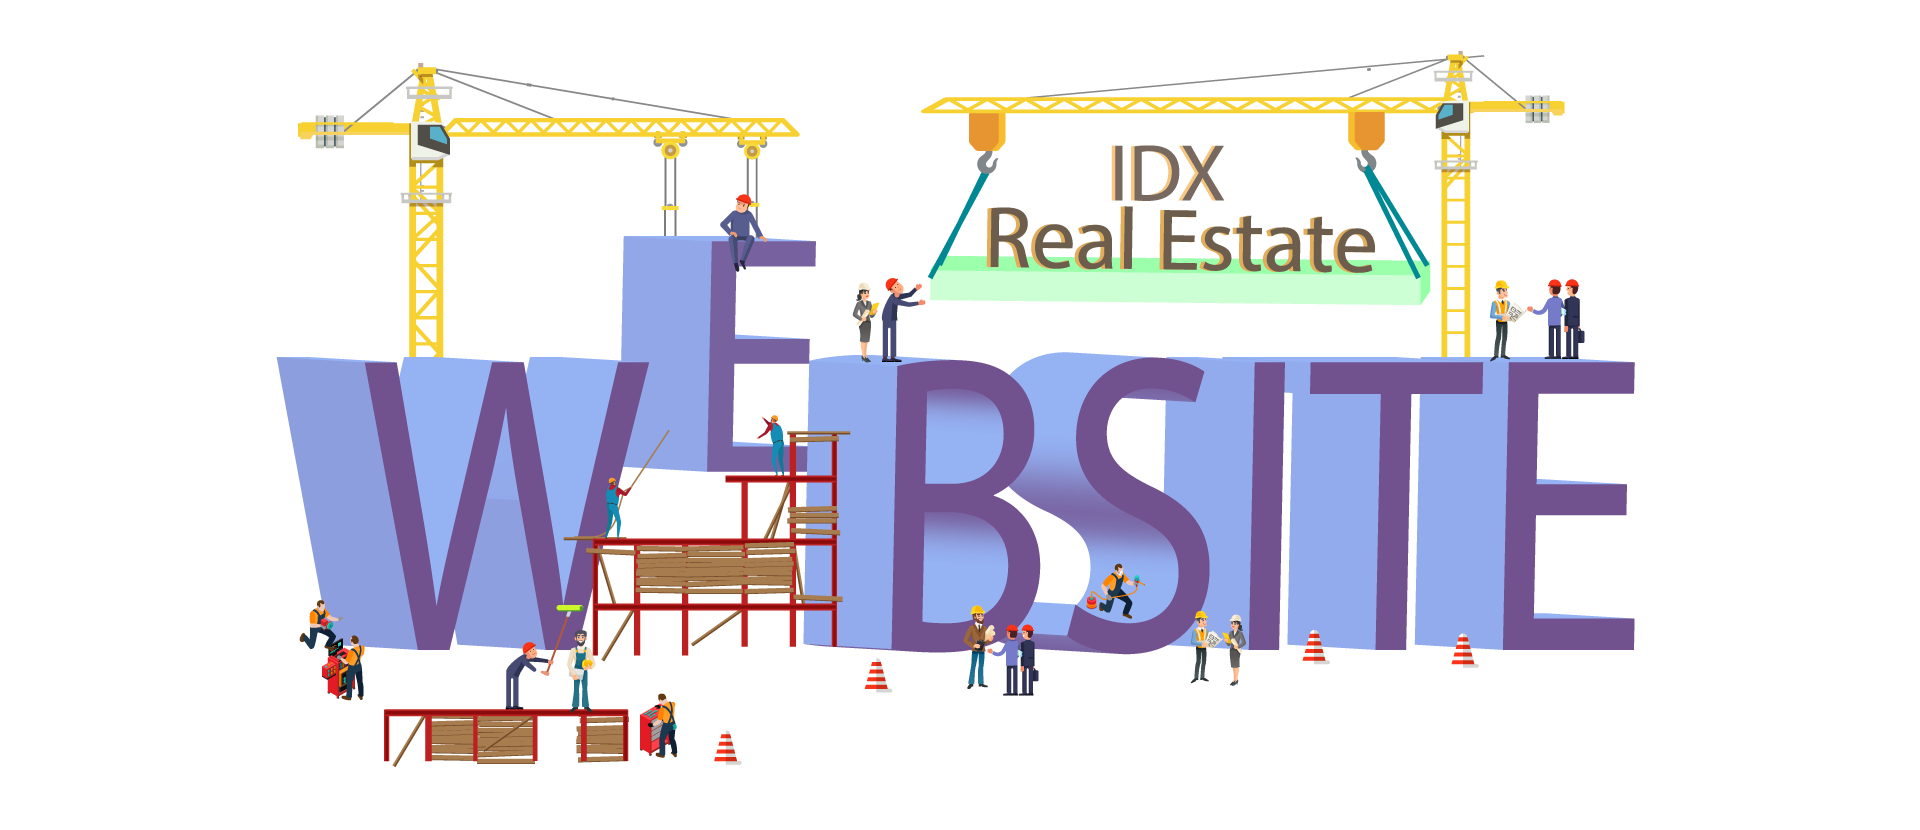 Build a website for IDX Real Estate